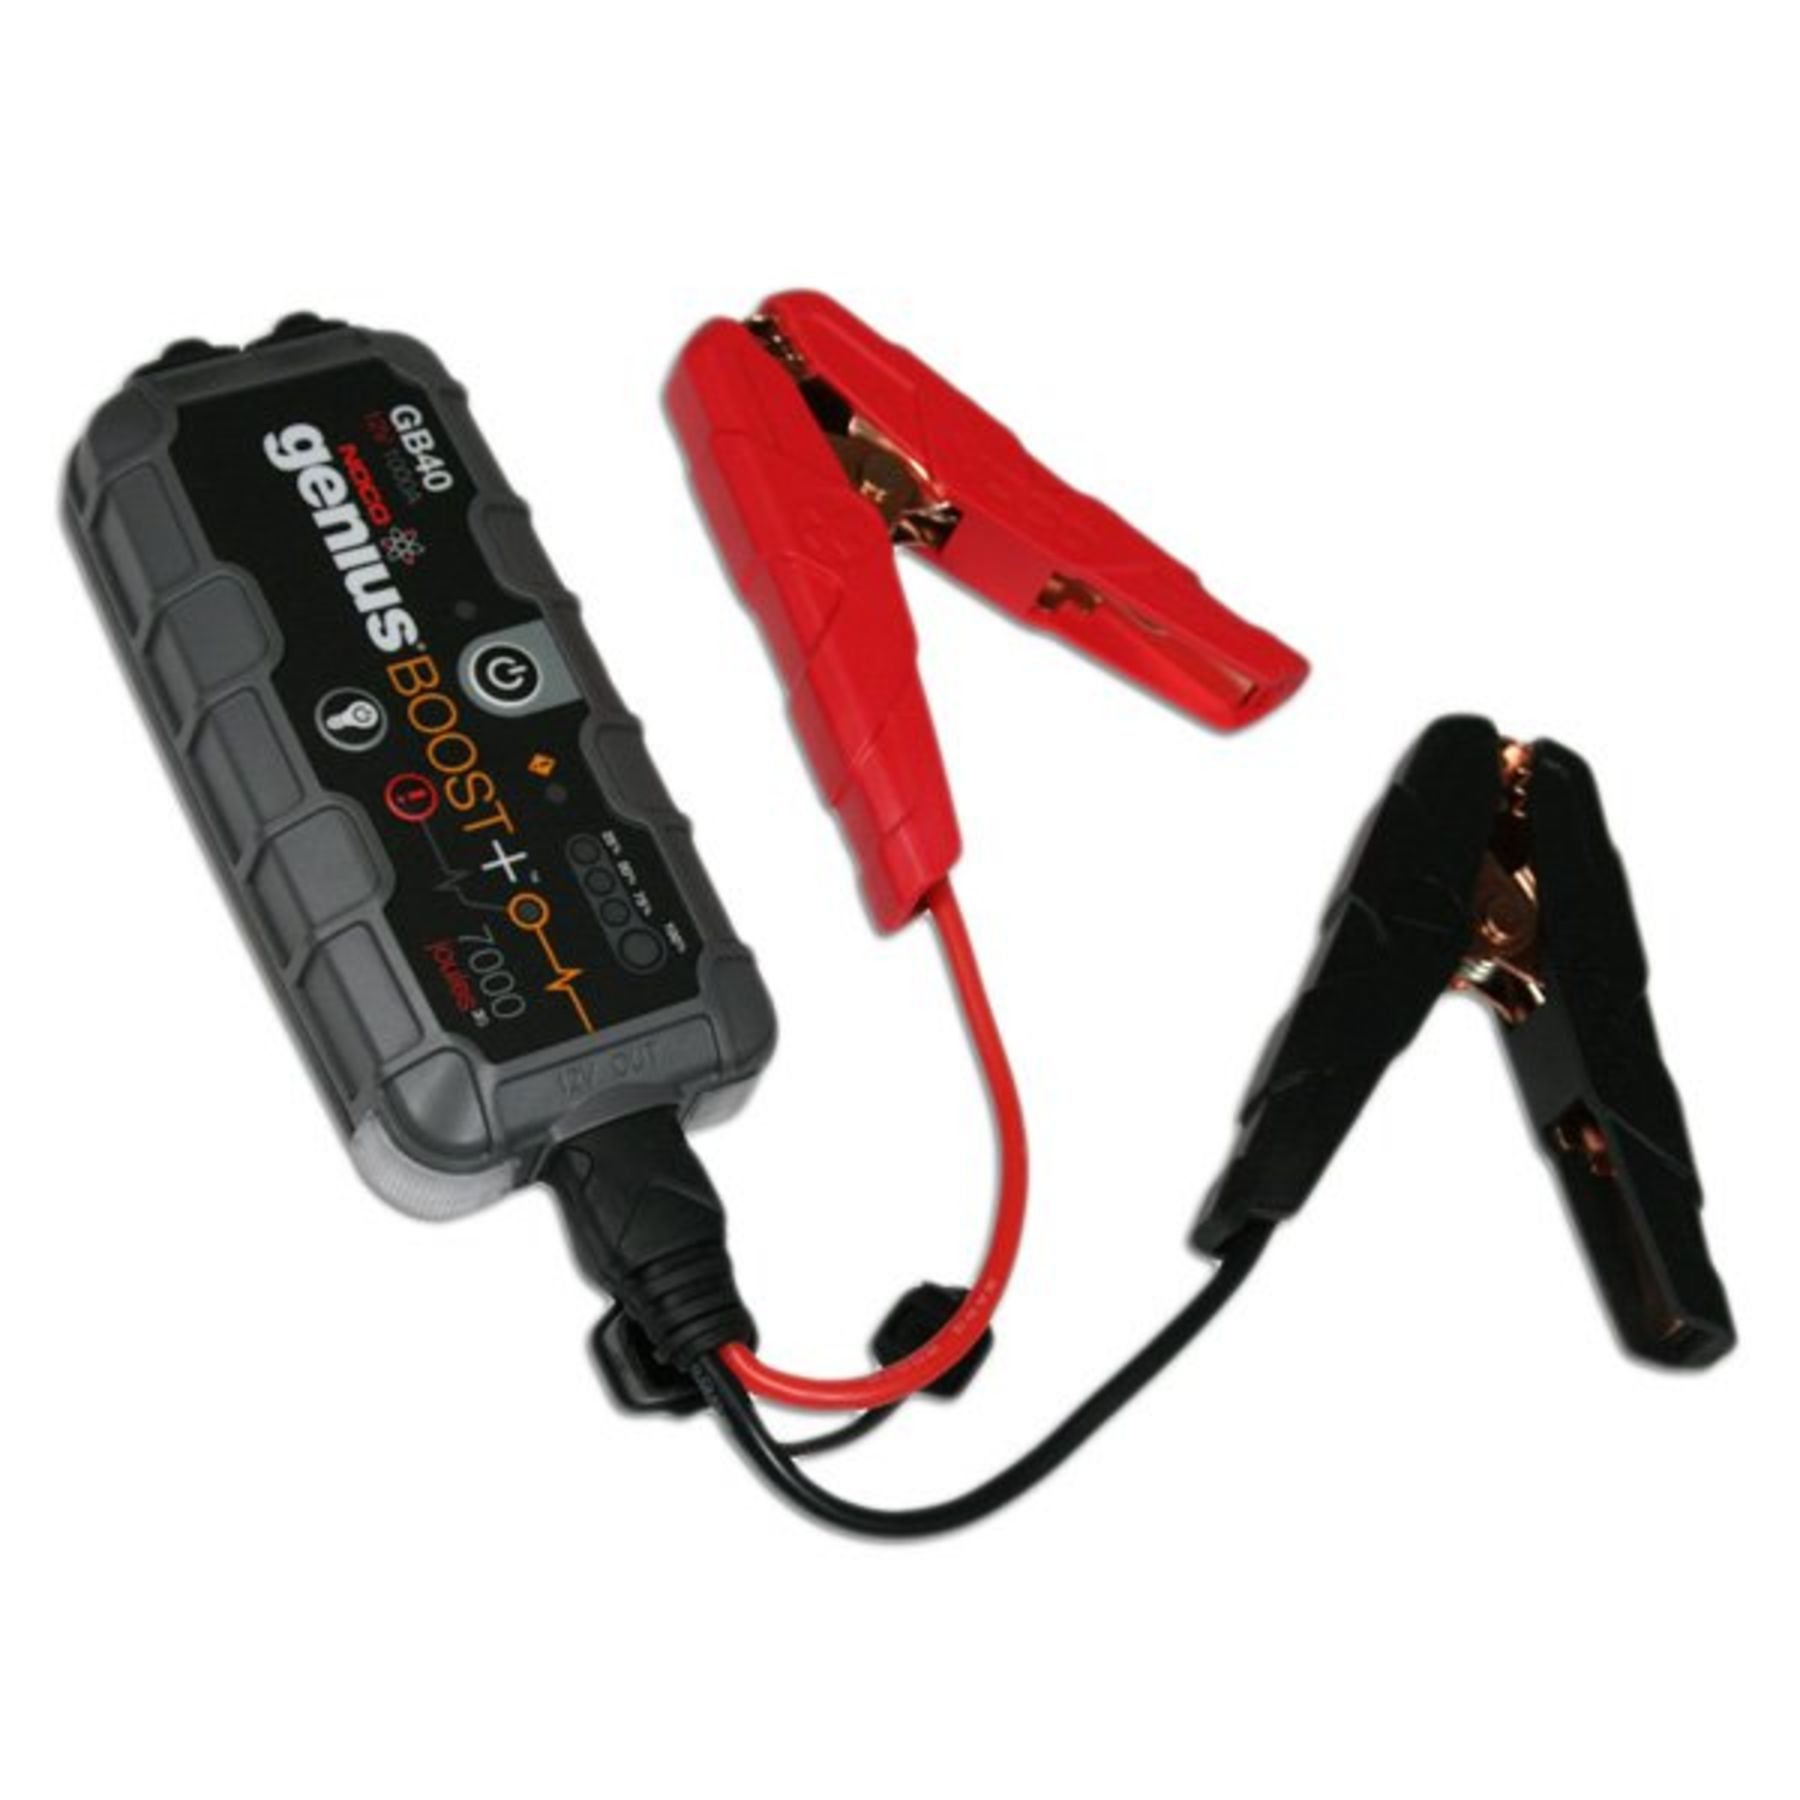 GB40 BOOST PLUS 1000A ULTRASAFE LITHIUM JUMP STARTER